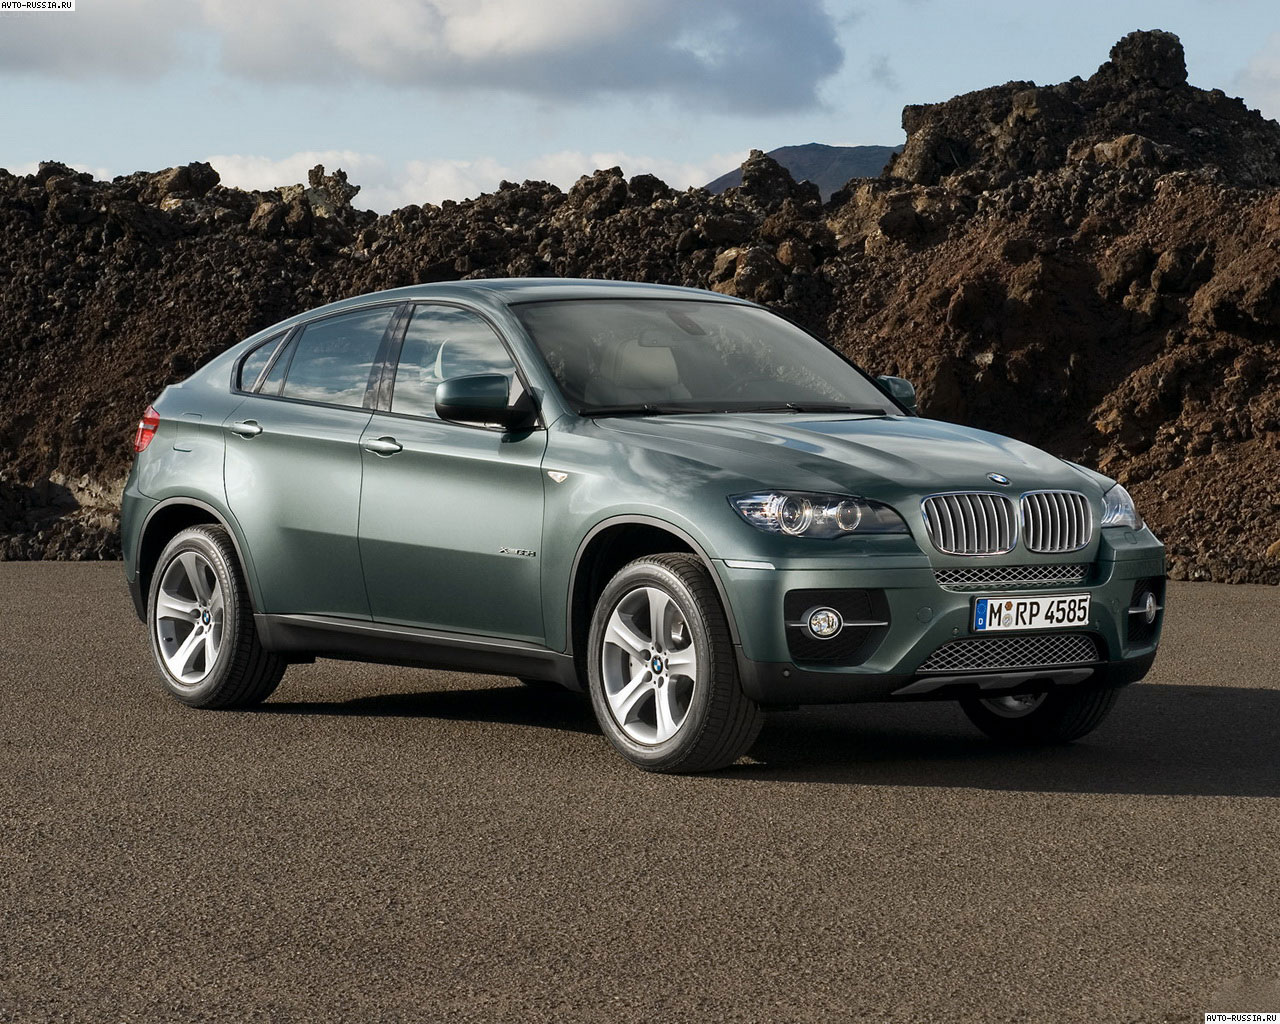 ���������� <strong>BMW X6</strong>: ���� #01 �� 18, ������ ����������� - 1280 �� <strong>...</strong>